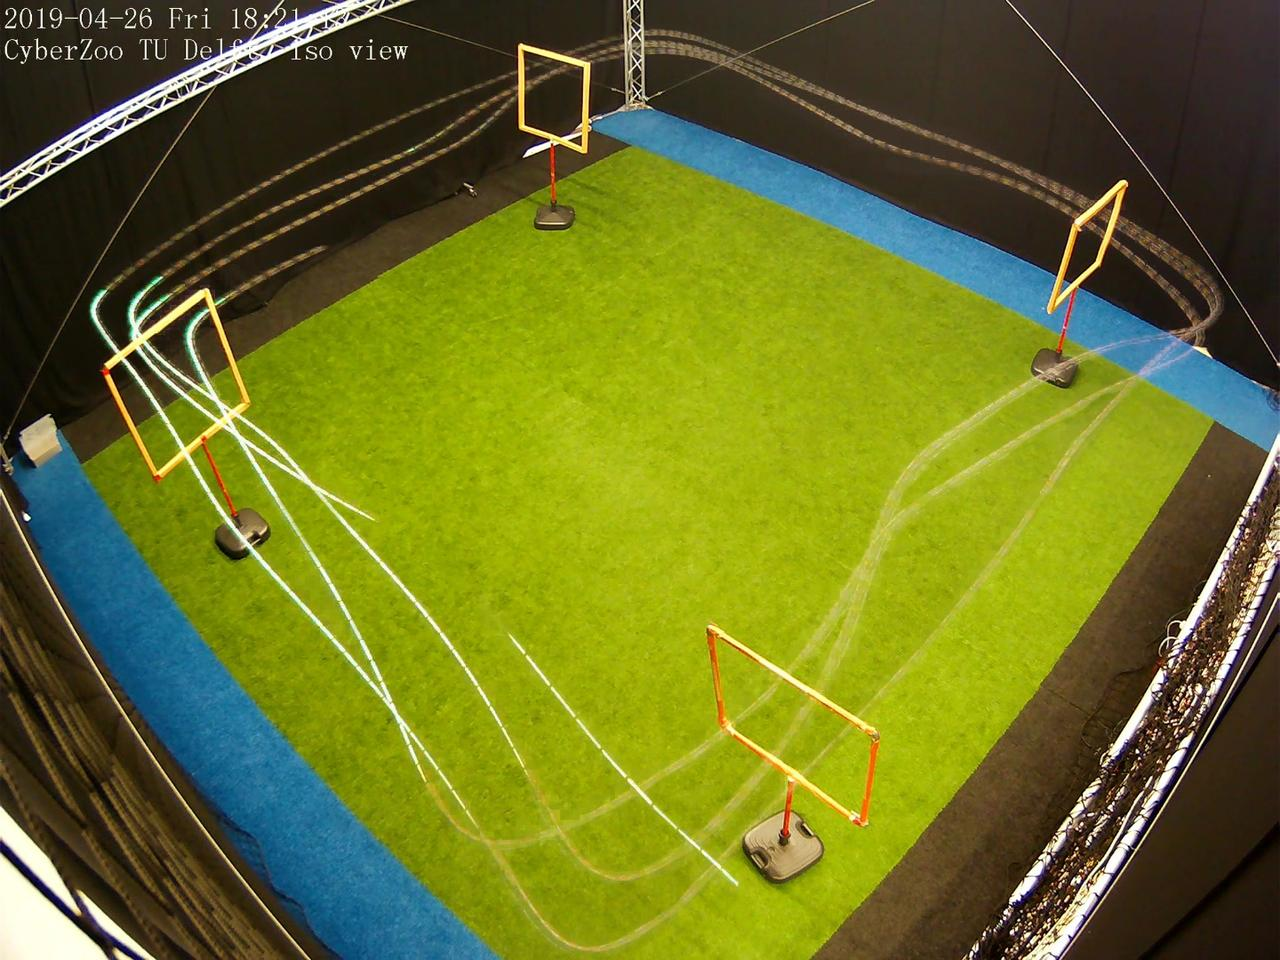 The TU Delft team put the world's smallest autonomous racing drone to work on an indoor course with four gates